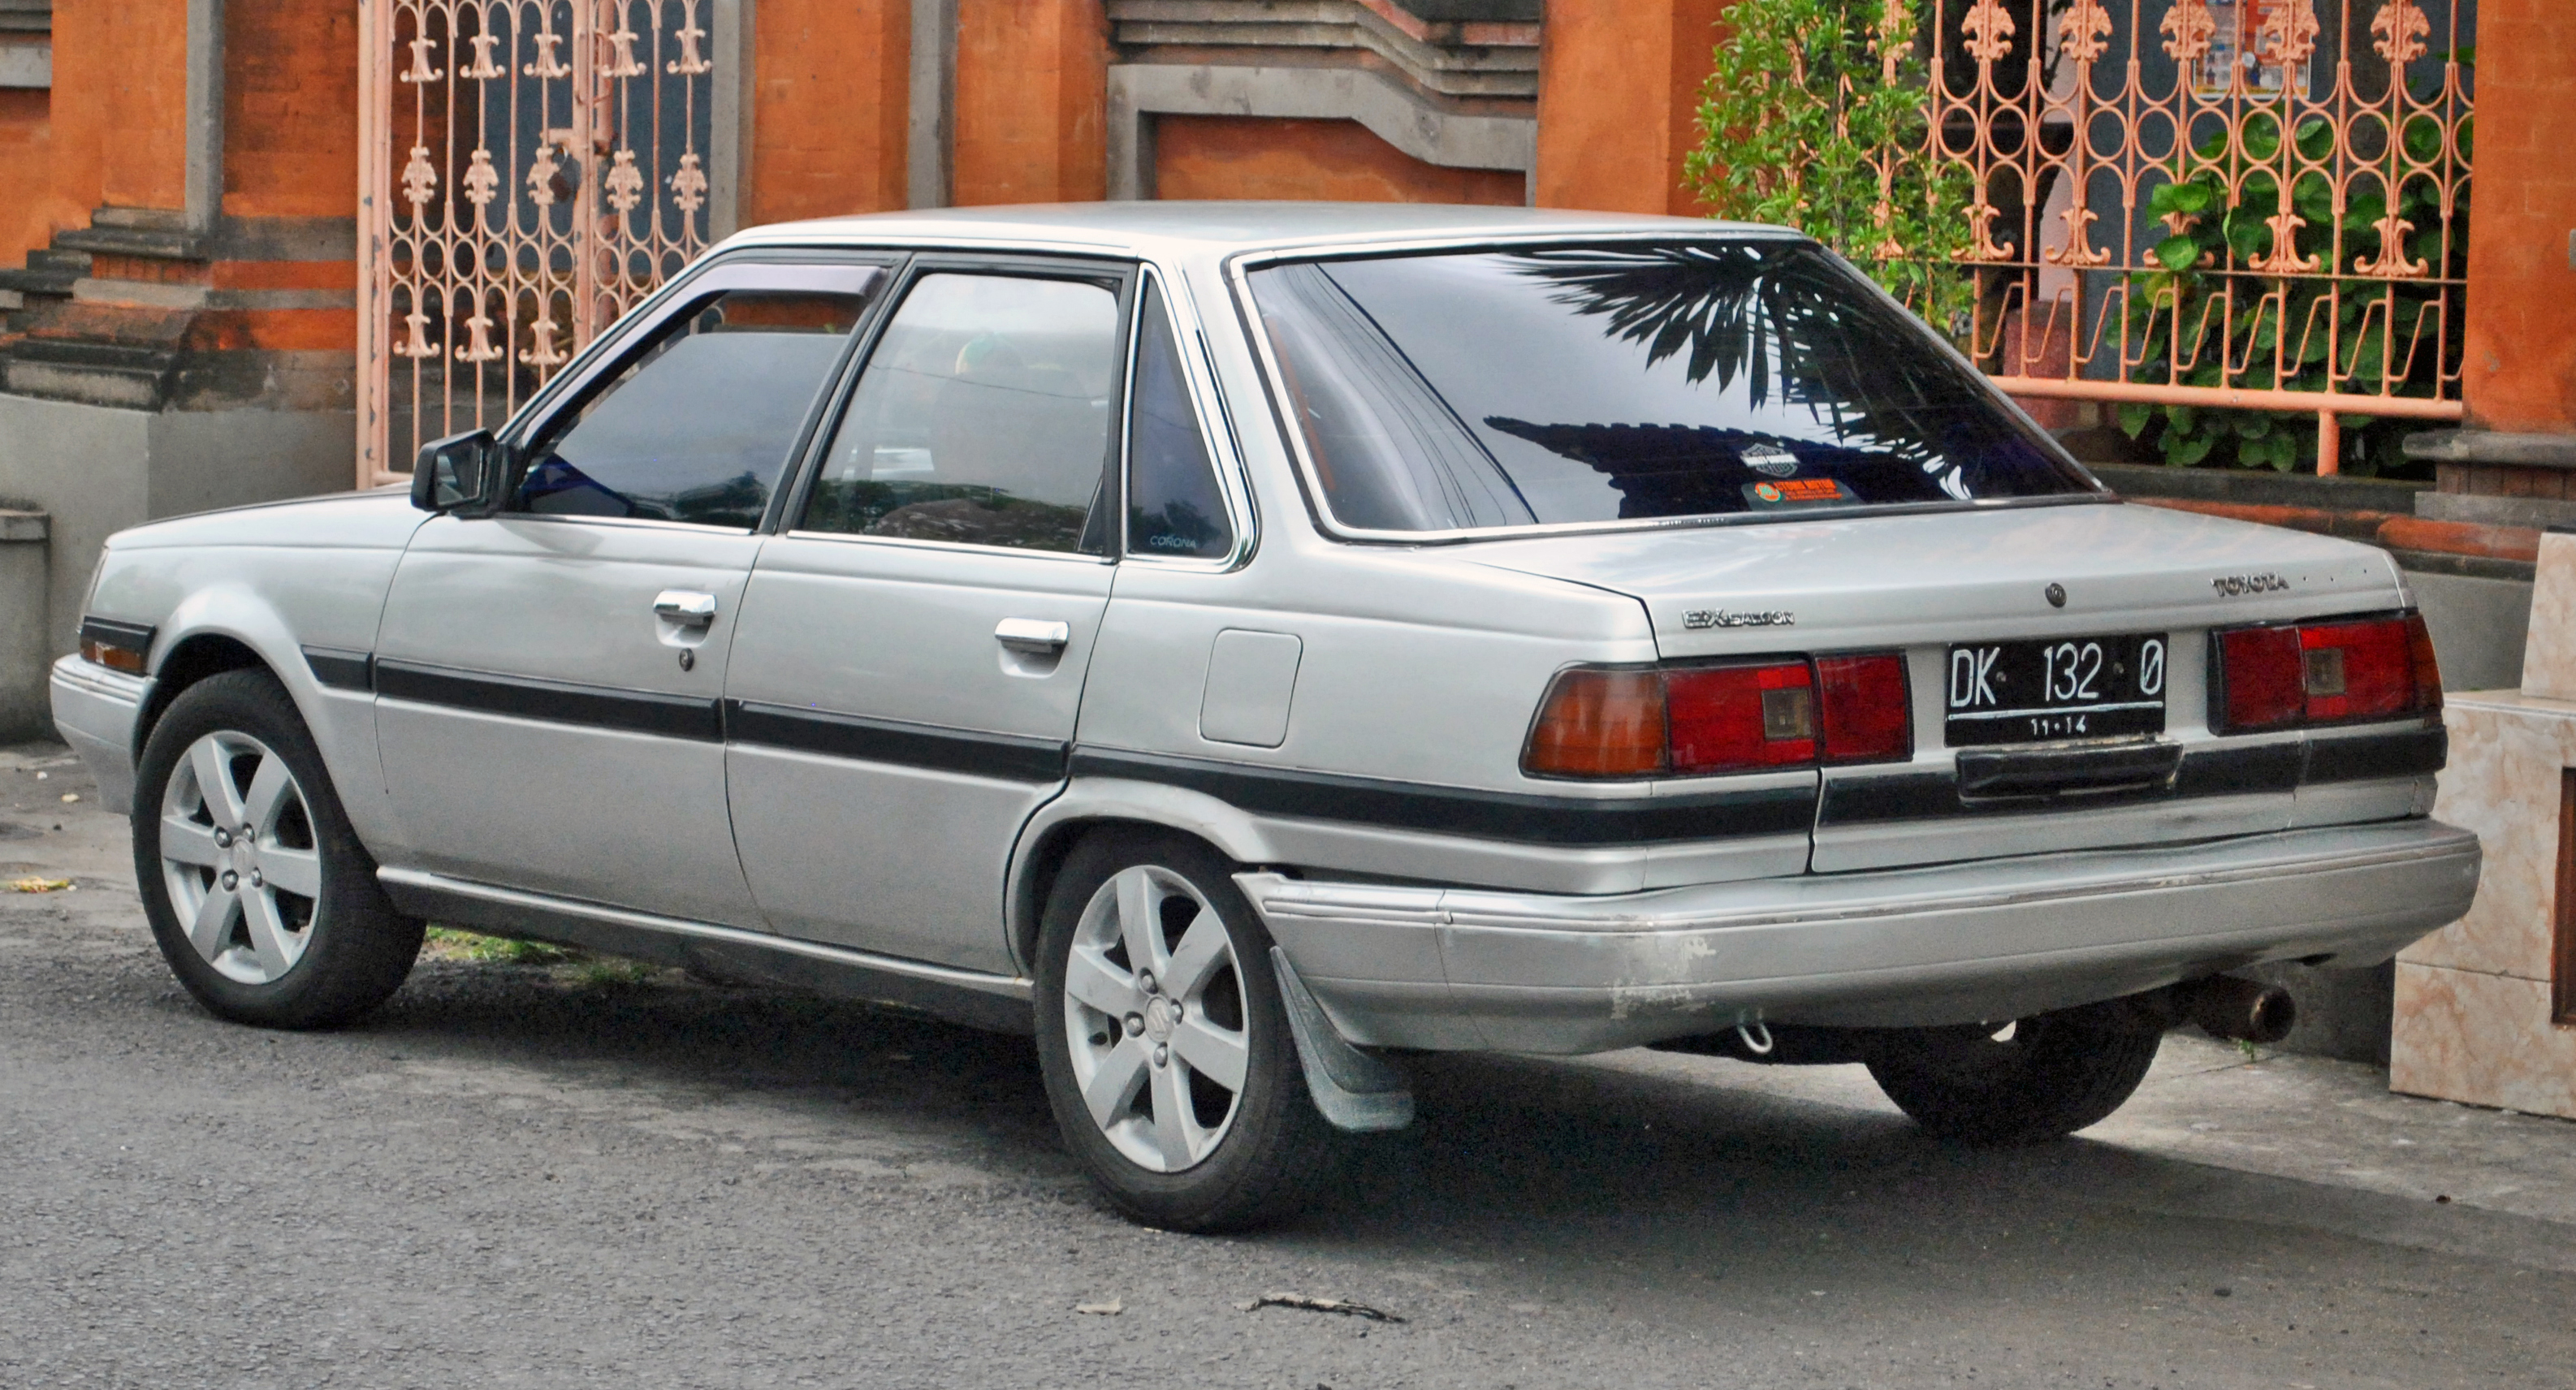 Toyota Corona Wikipedia 75 Corolla Wiring Diagram 1991 Auto Ex Sedan With Non Standard Wheels